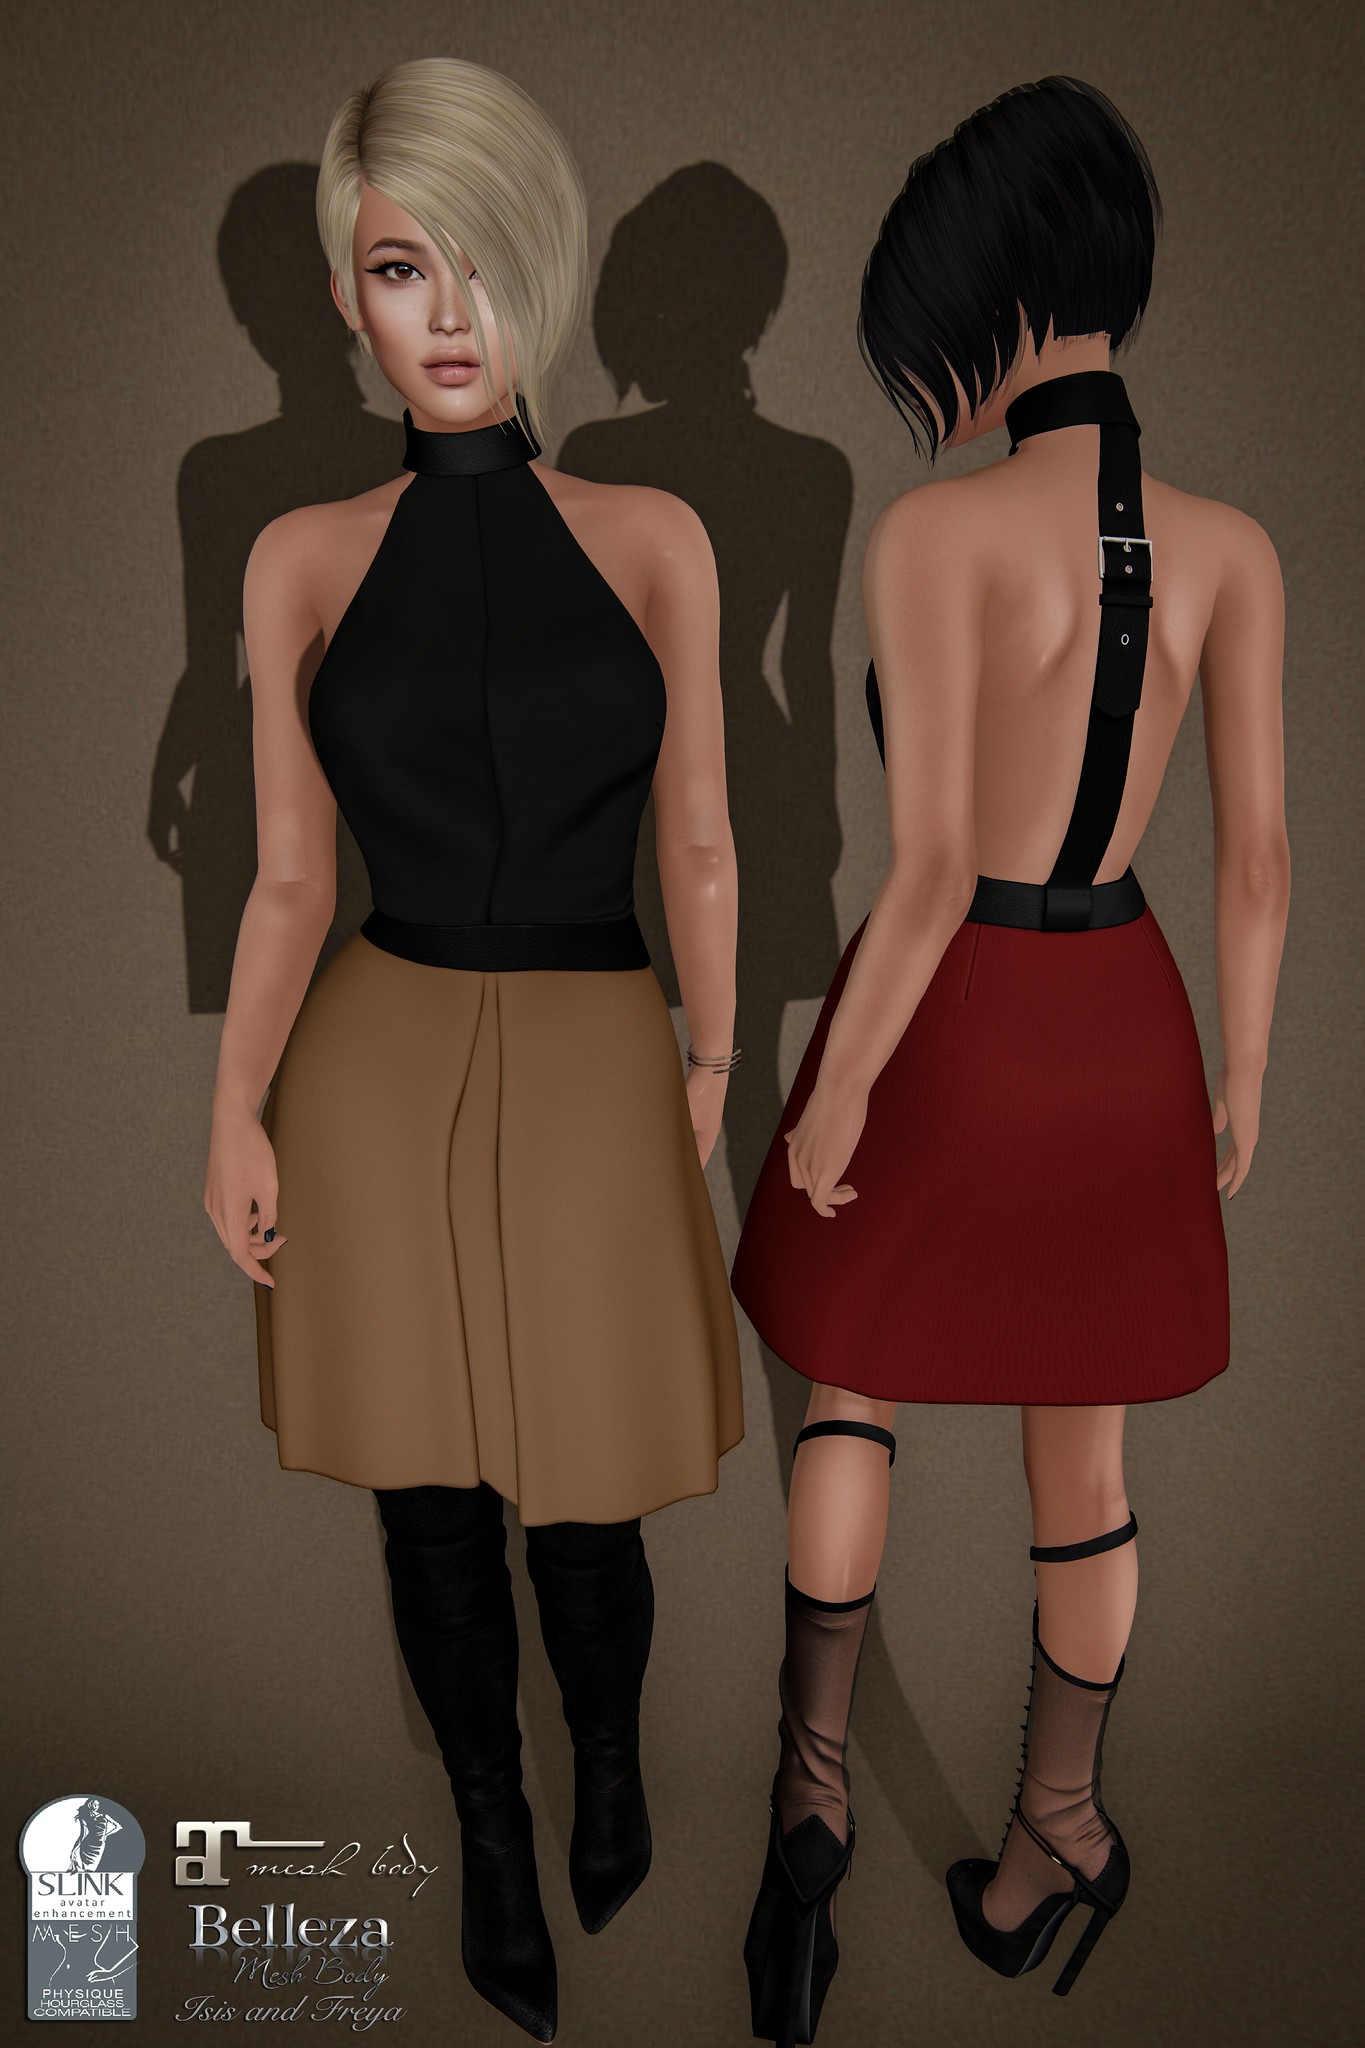 Amber dress for Fifty Linden Friday.